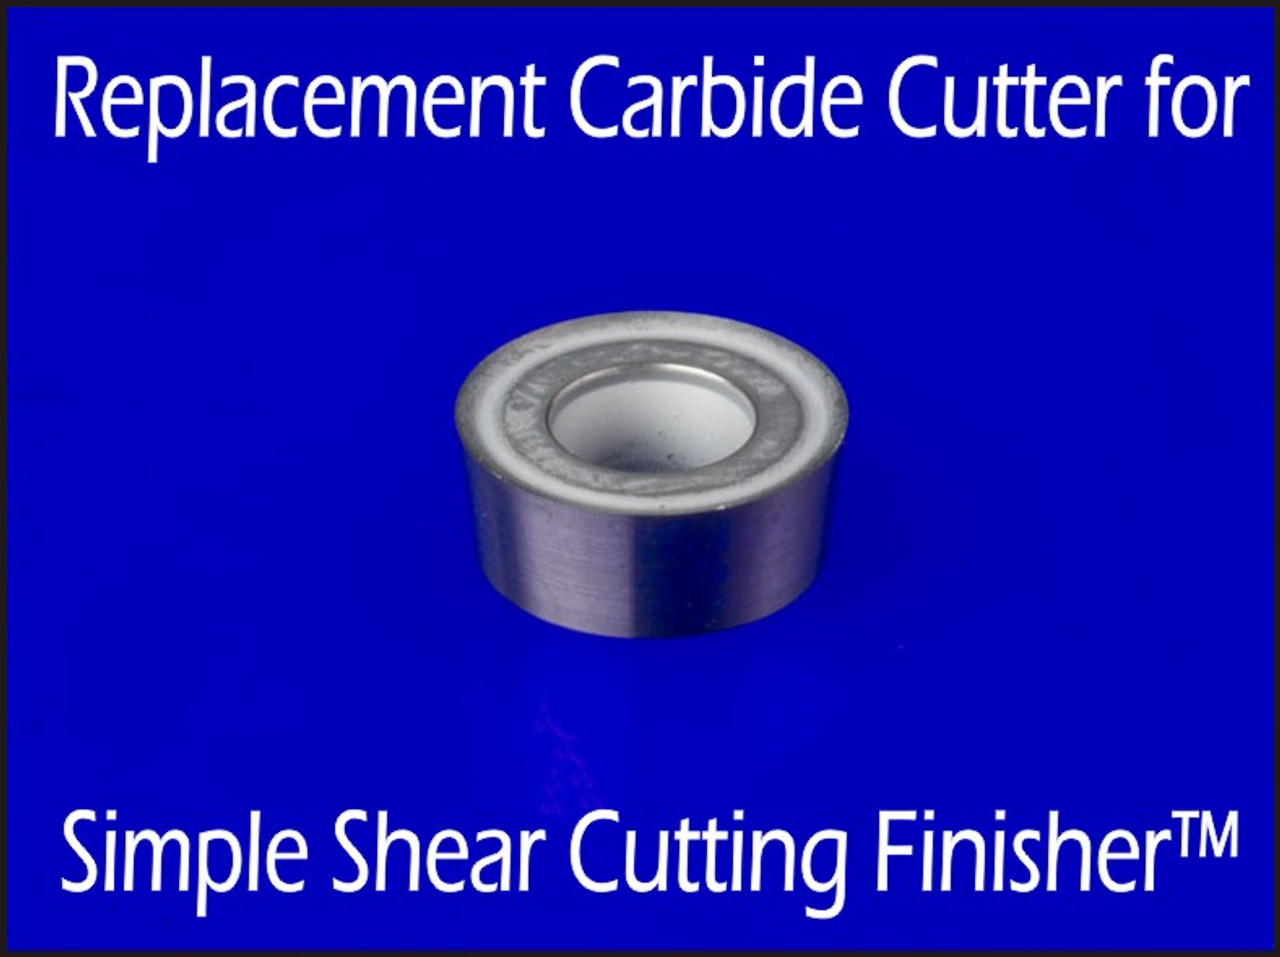 Cutter for SSCF - Full Size Simple Shear Cutting Finisher